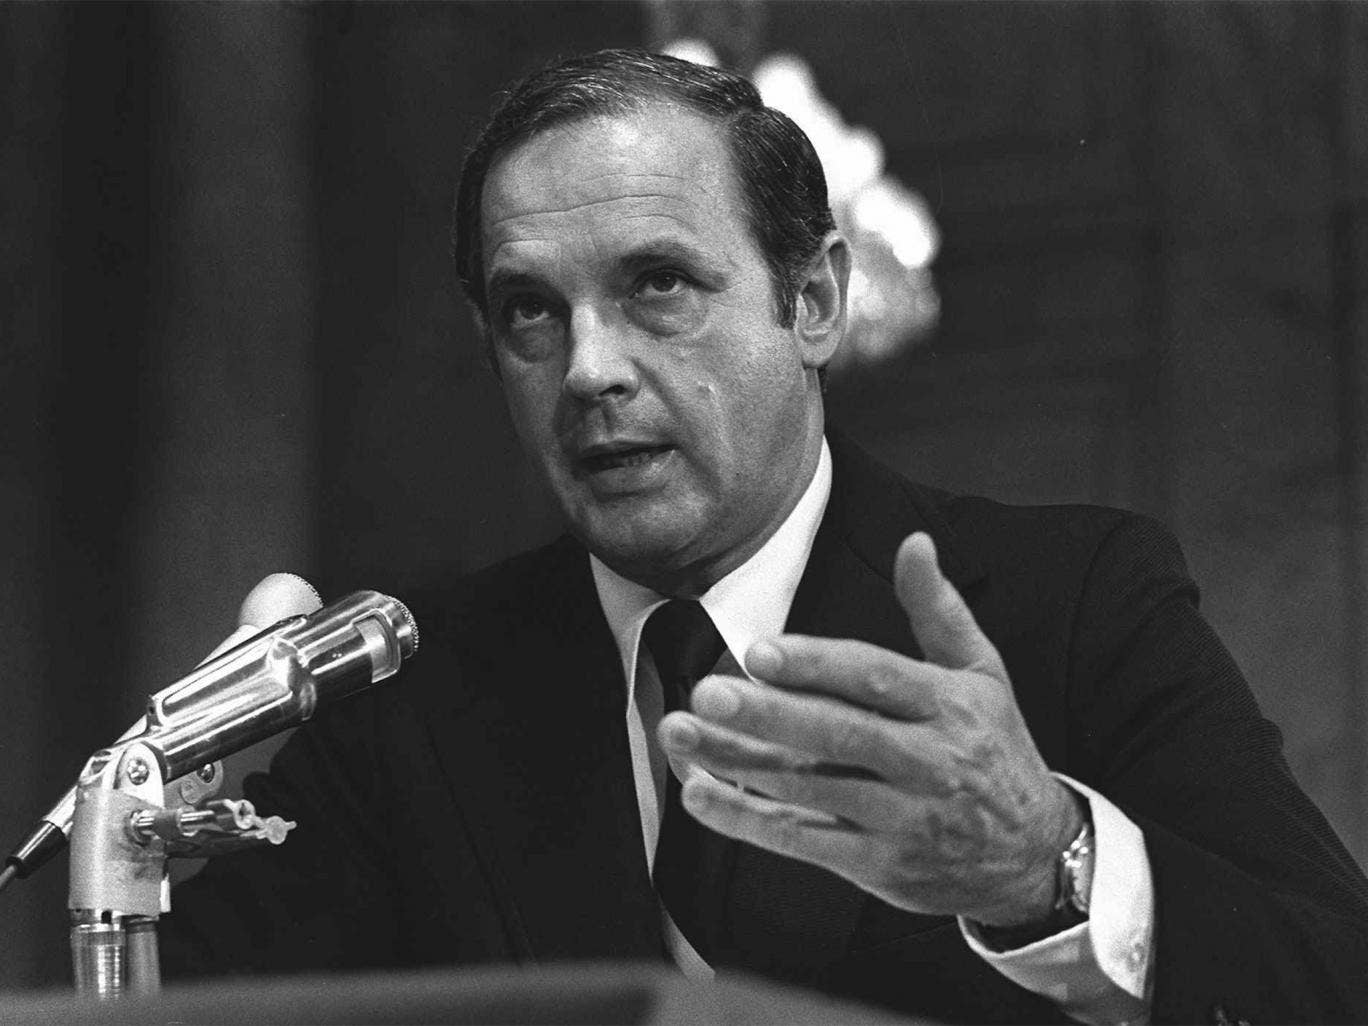 ... Watergate-related case and became a Christian evangelical helping